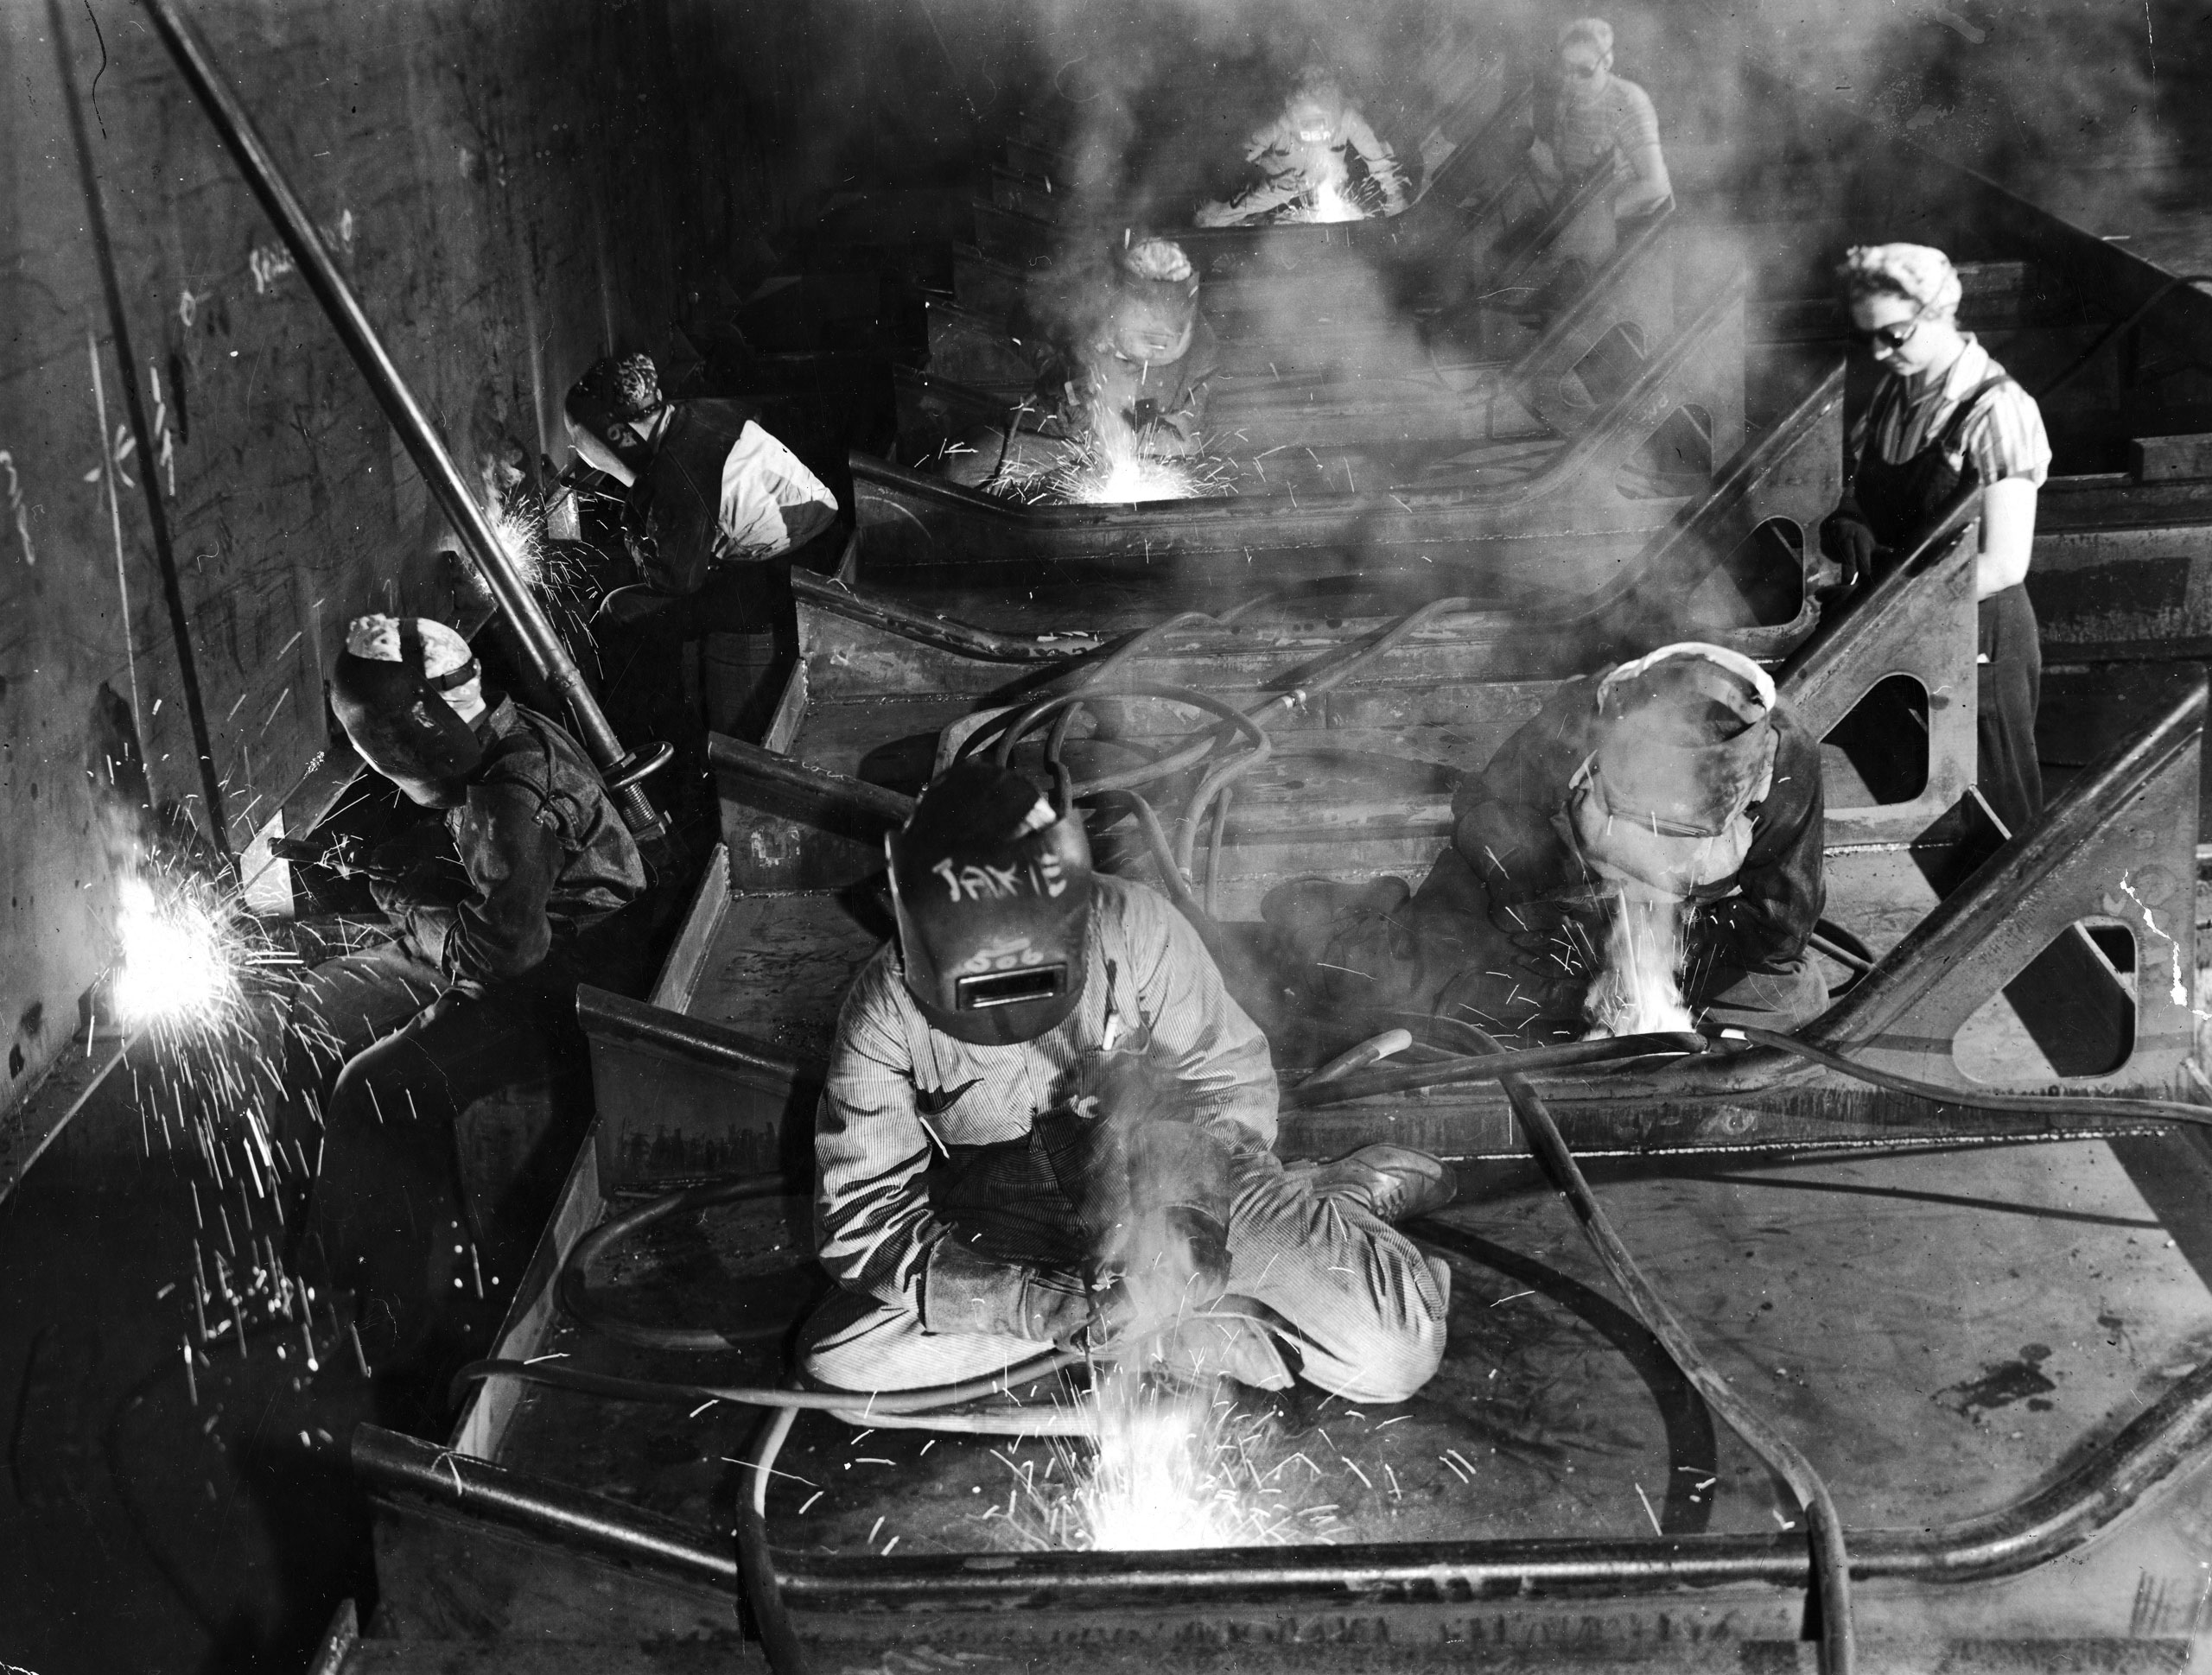 <b>Caption from LIFE.</b> On aircraft carrier deck women work as welders and scrapers. Girls alongside this steel prefabricated deck section who are without headgear and masks operate tools which scrape loose surface imperfections in preparation for welding. The welder in foreground has her name, 'Jakie,' written on helmet, a popular style note among lady welders.